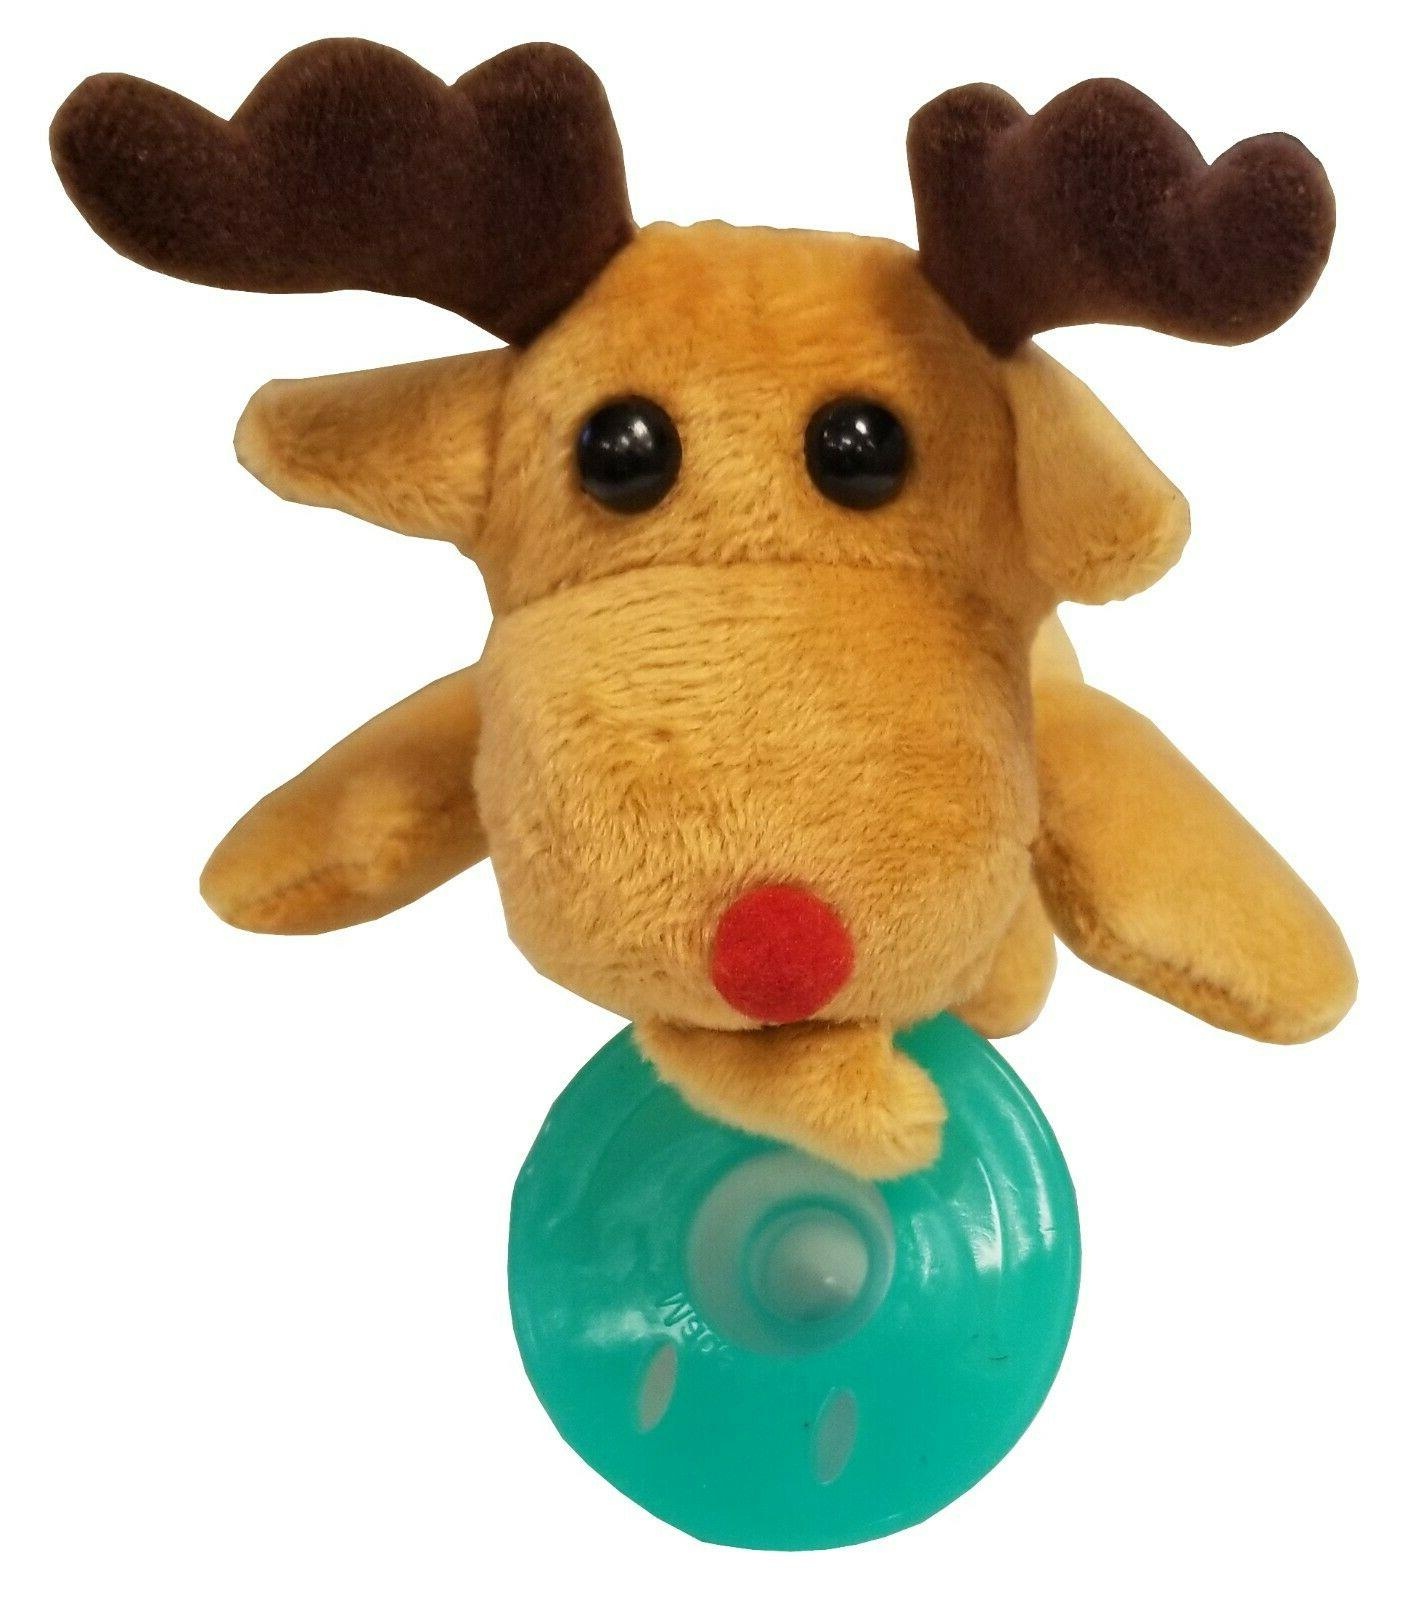 stuffed reindeer with green pacifier